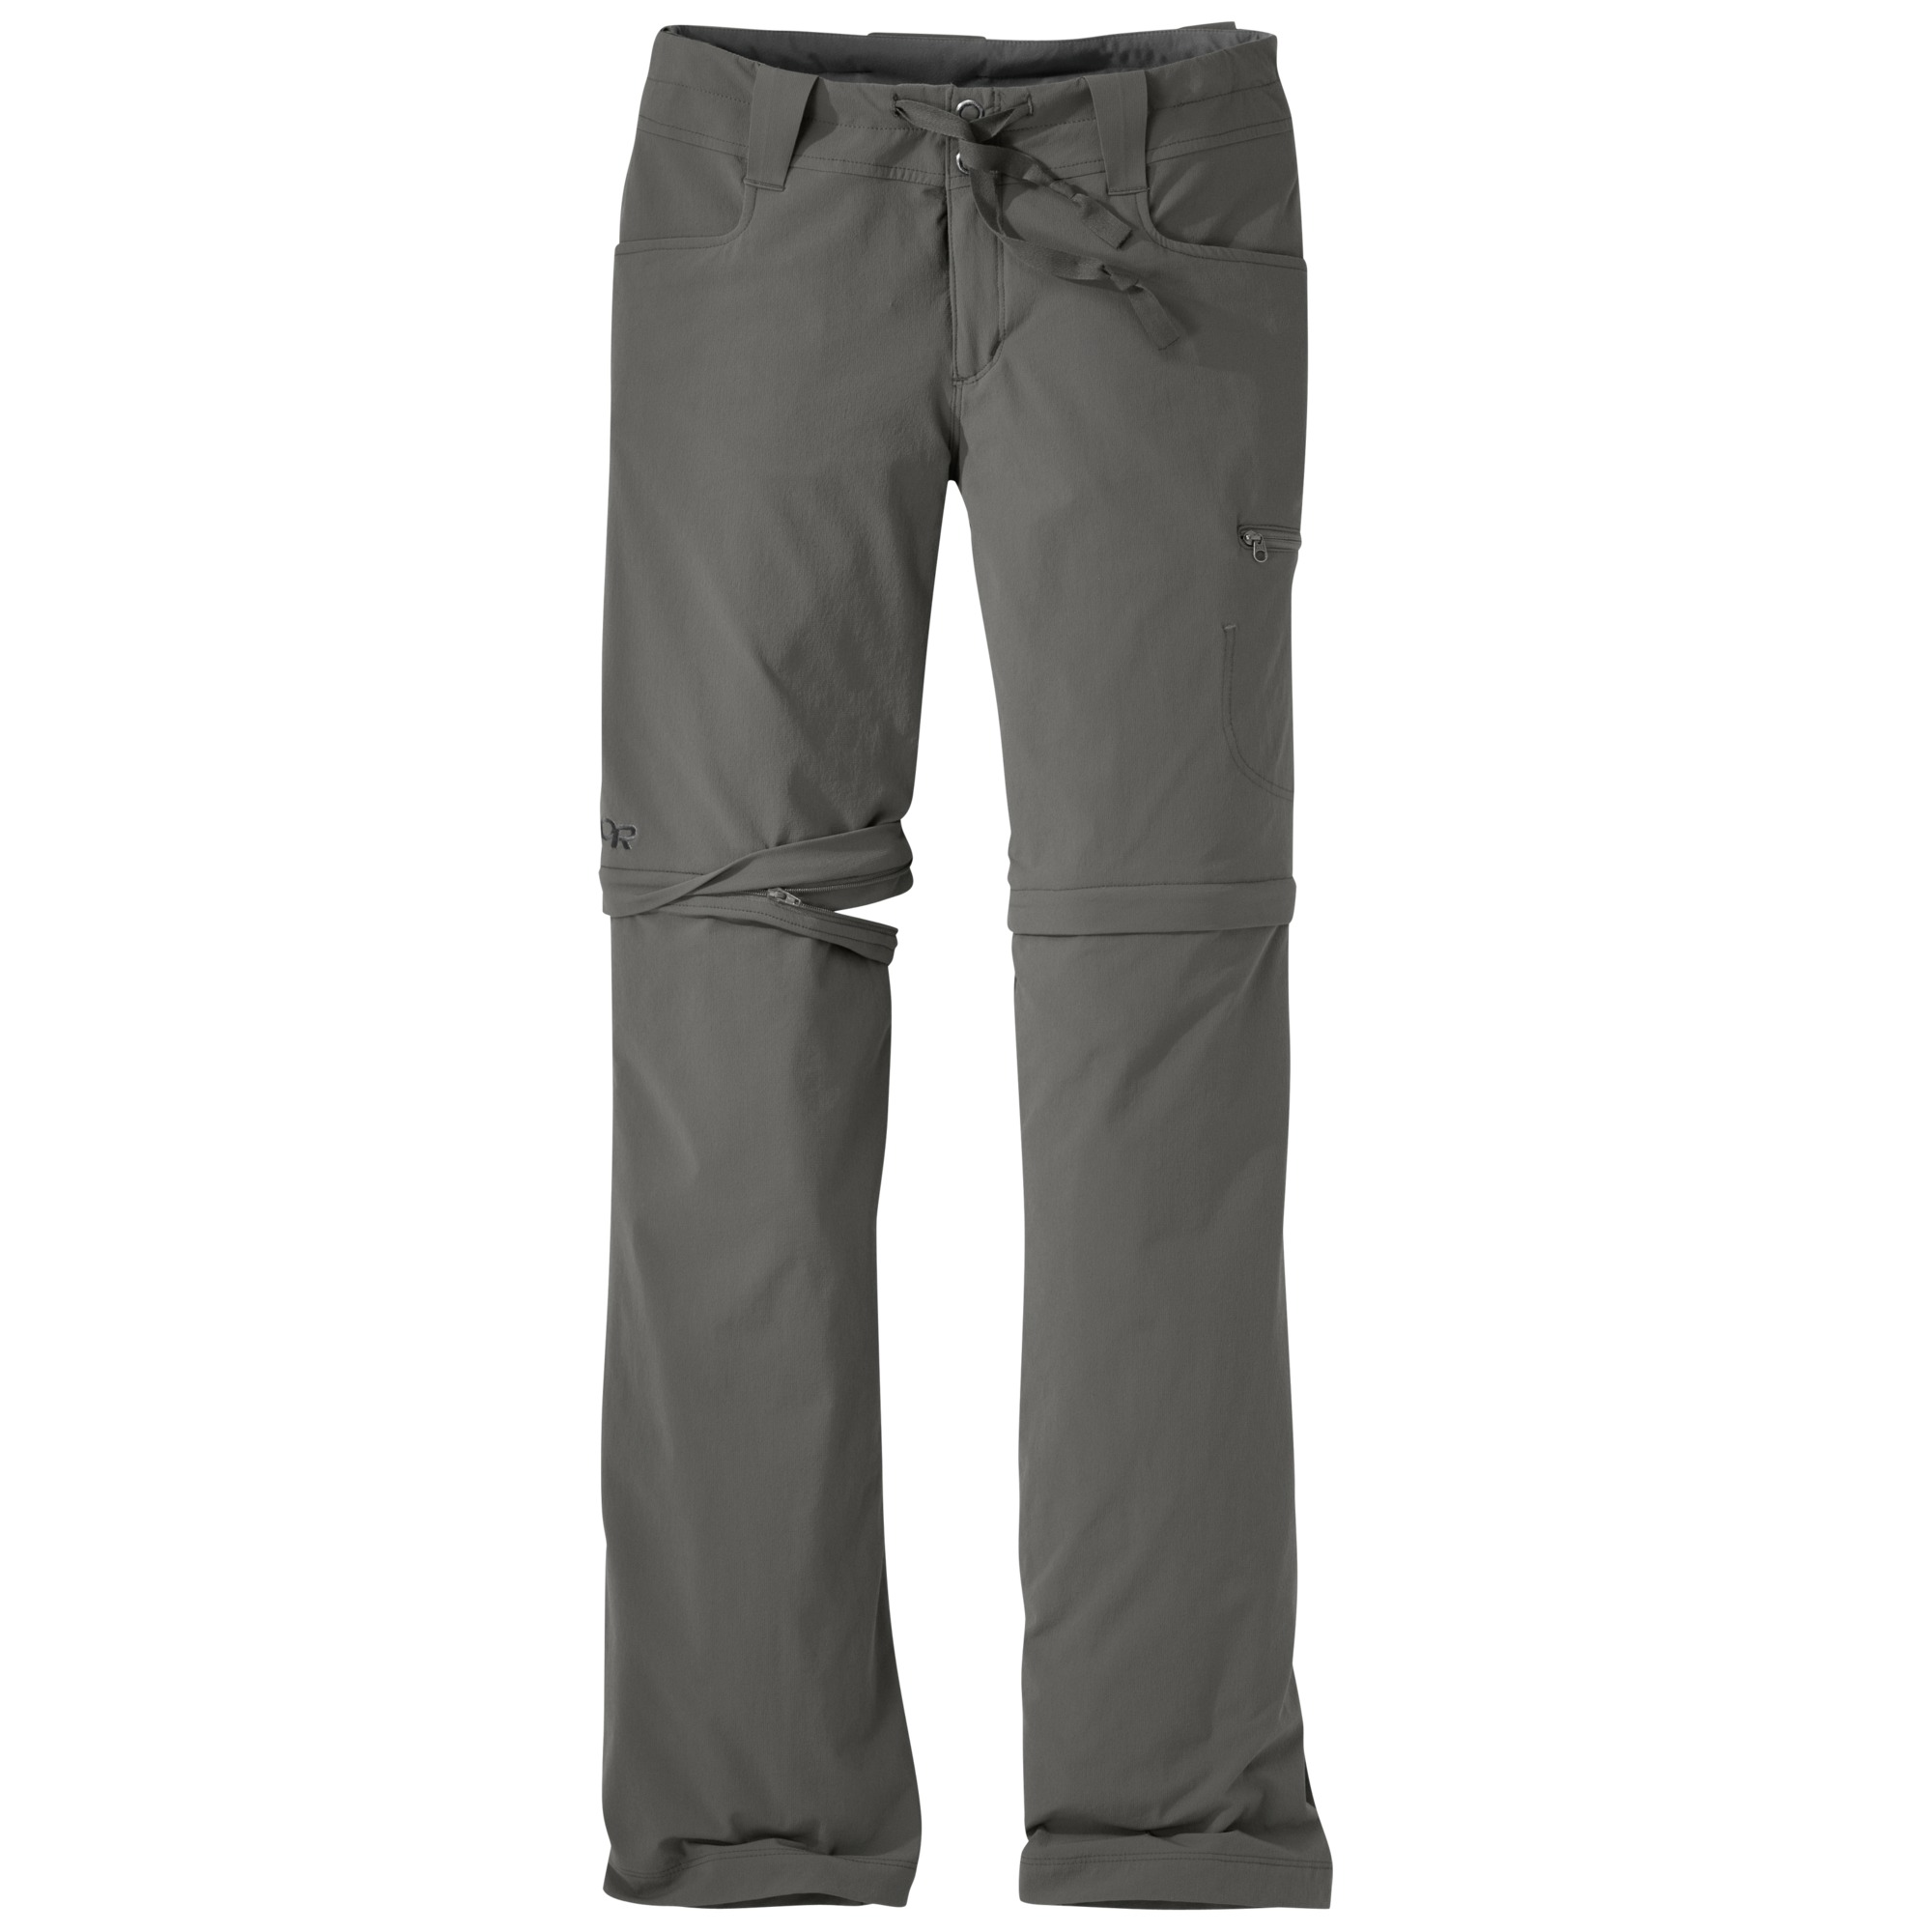 Outdoor Research Women's Ferrosi Convertible Pants-pewter-4 - Gr. 4